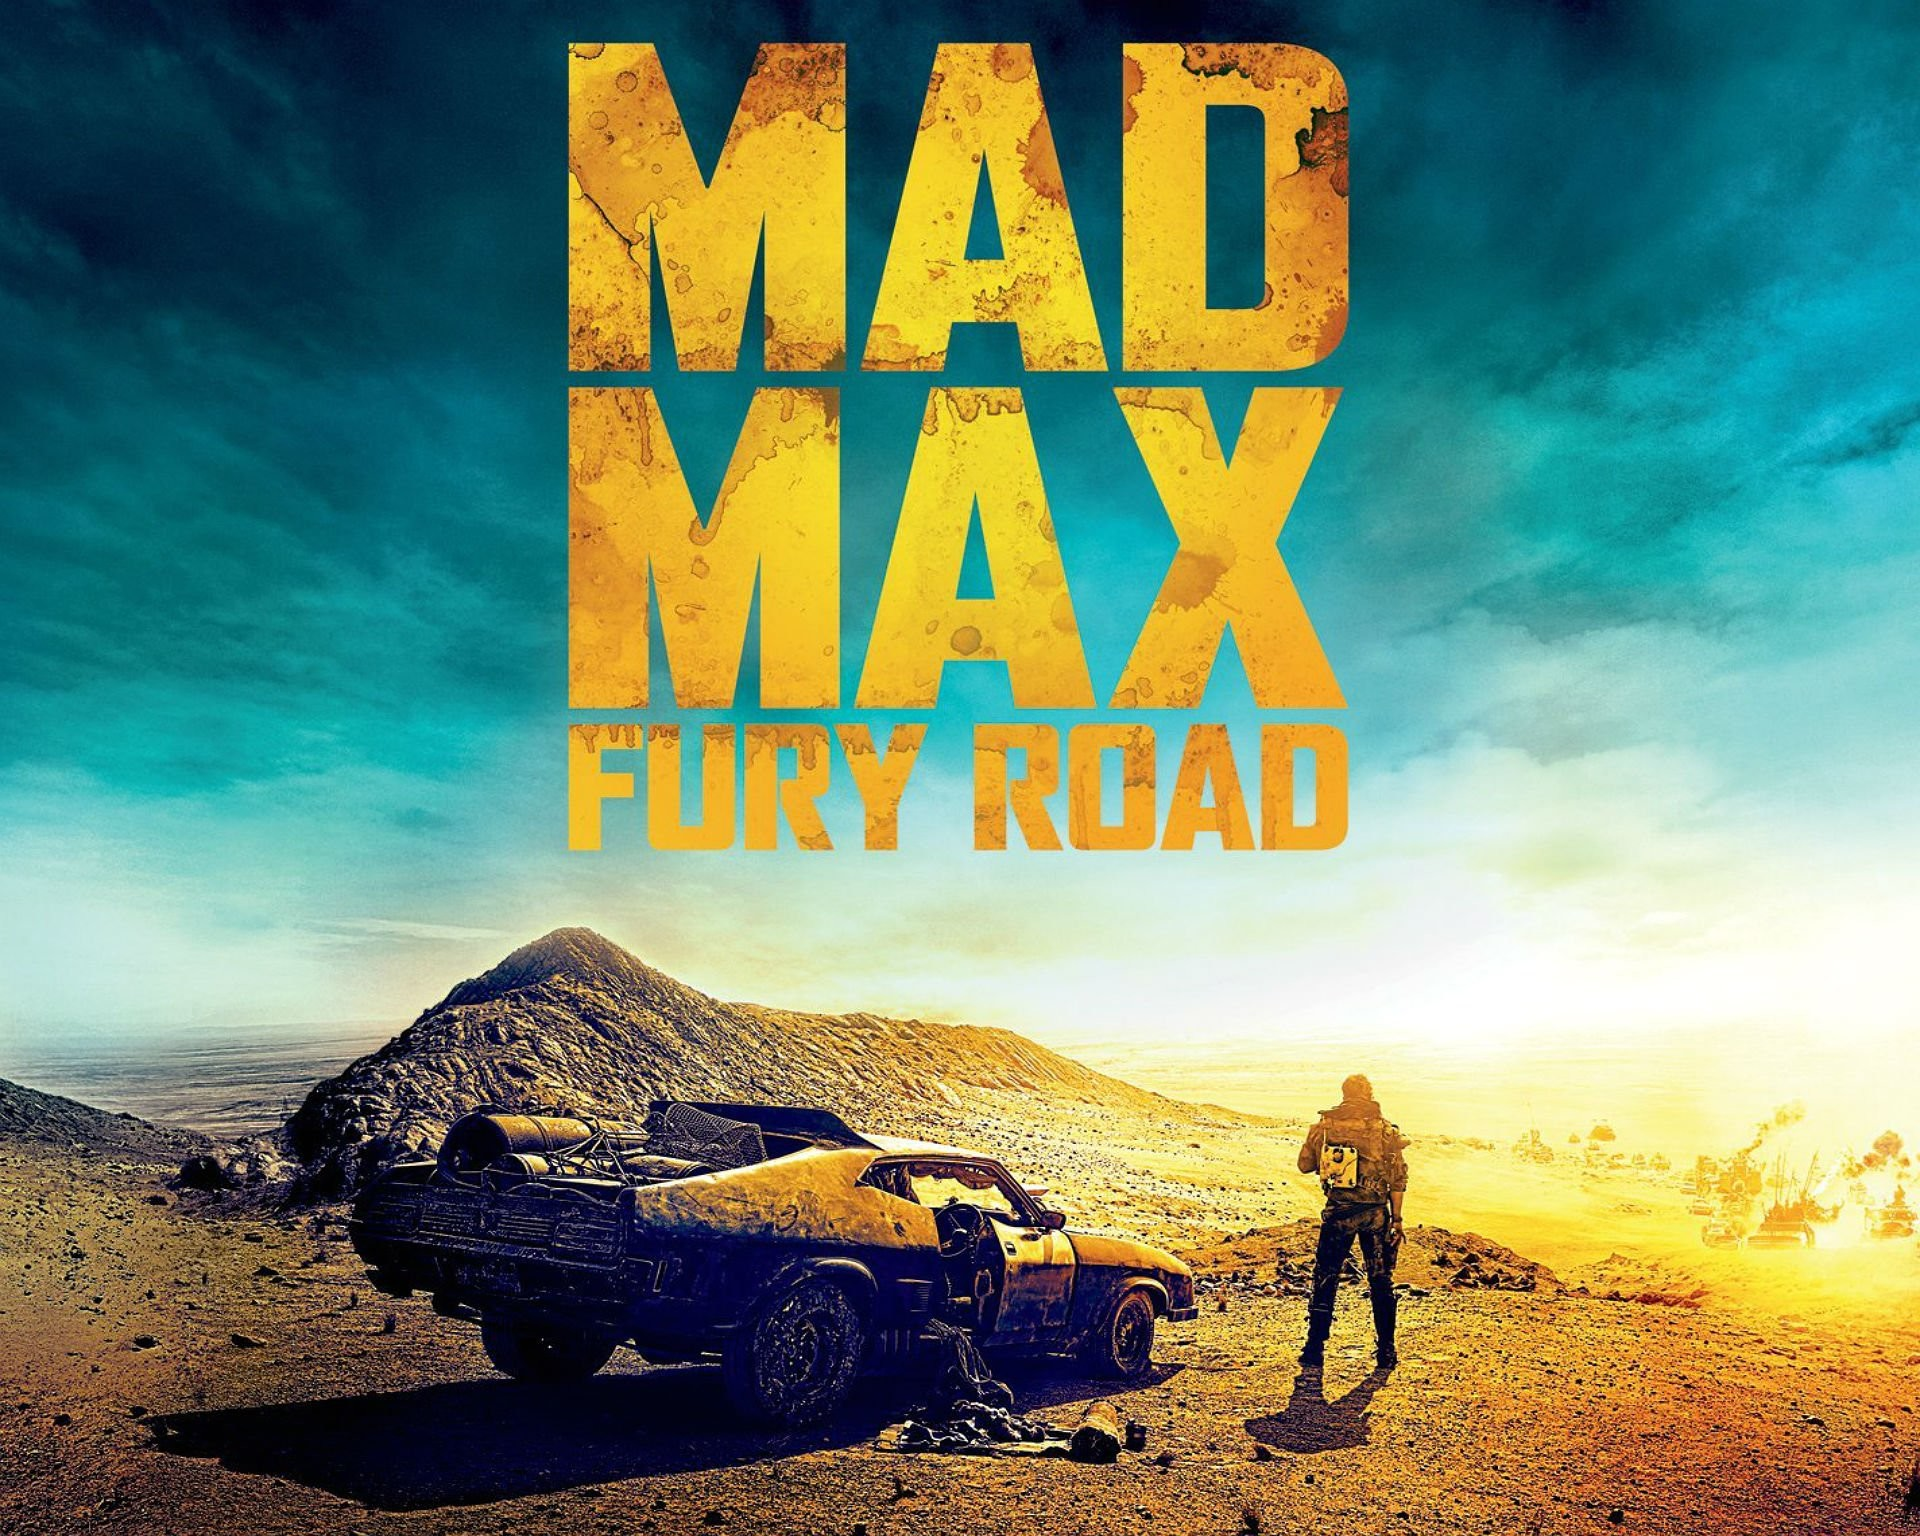 1920x1536 MAD MAX FURY ROAD sci-fi futuristic action fighting adventure 1mad-max  apocalyptic road warrior poster wallpaper |  | 666086 | WallpaperUP